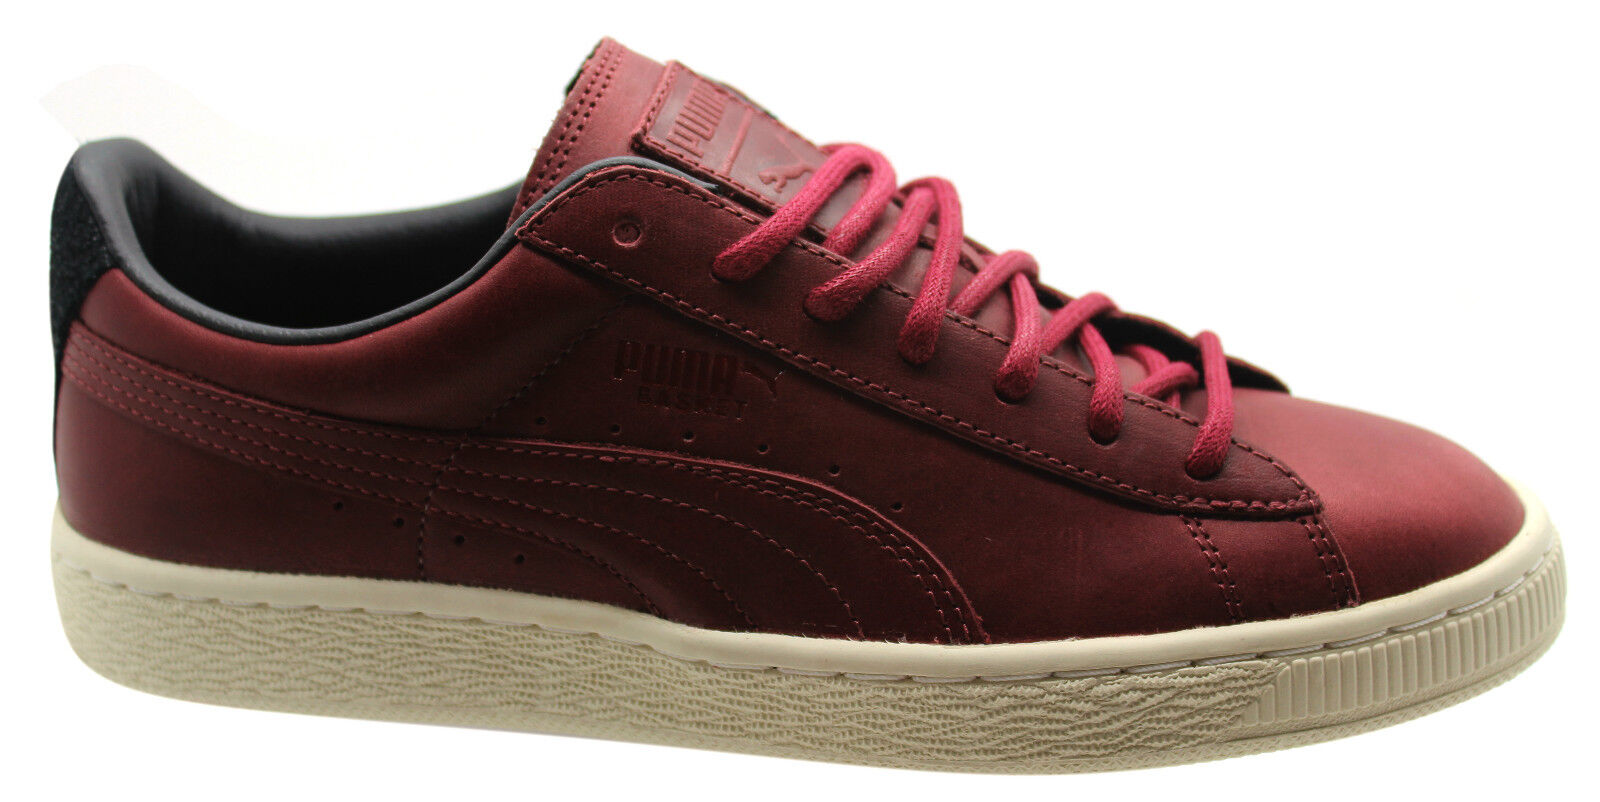 Puma Trainers Basket Citi Series Mens Trainers Puma Unisex Shoes Red Leather 358891 02 D80 f5b6b4